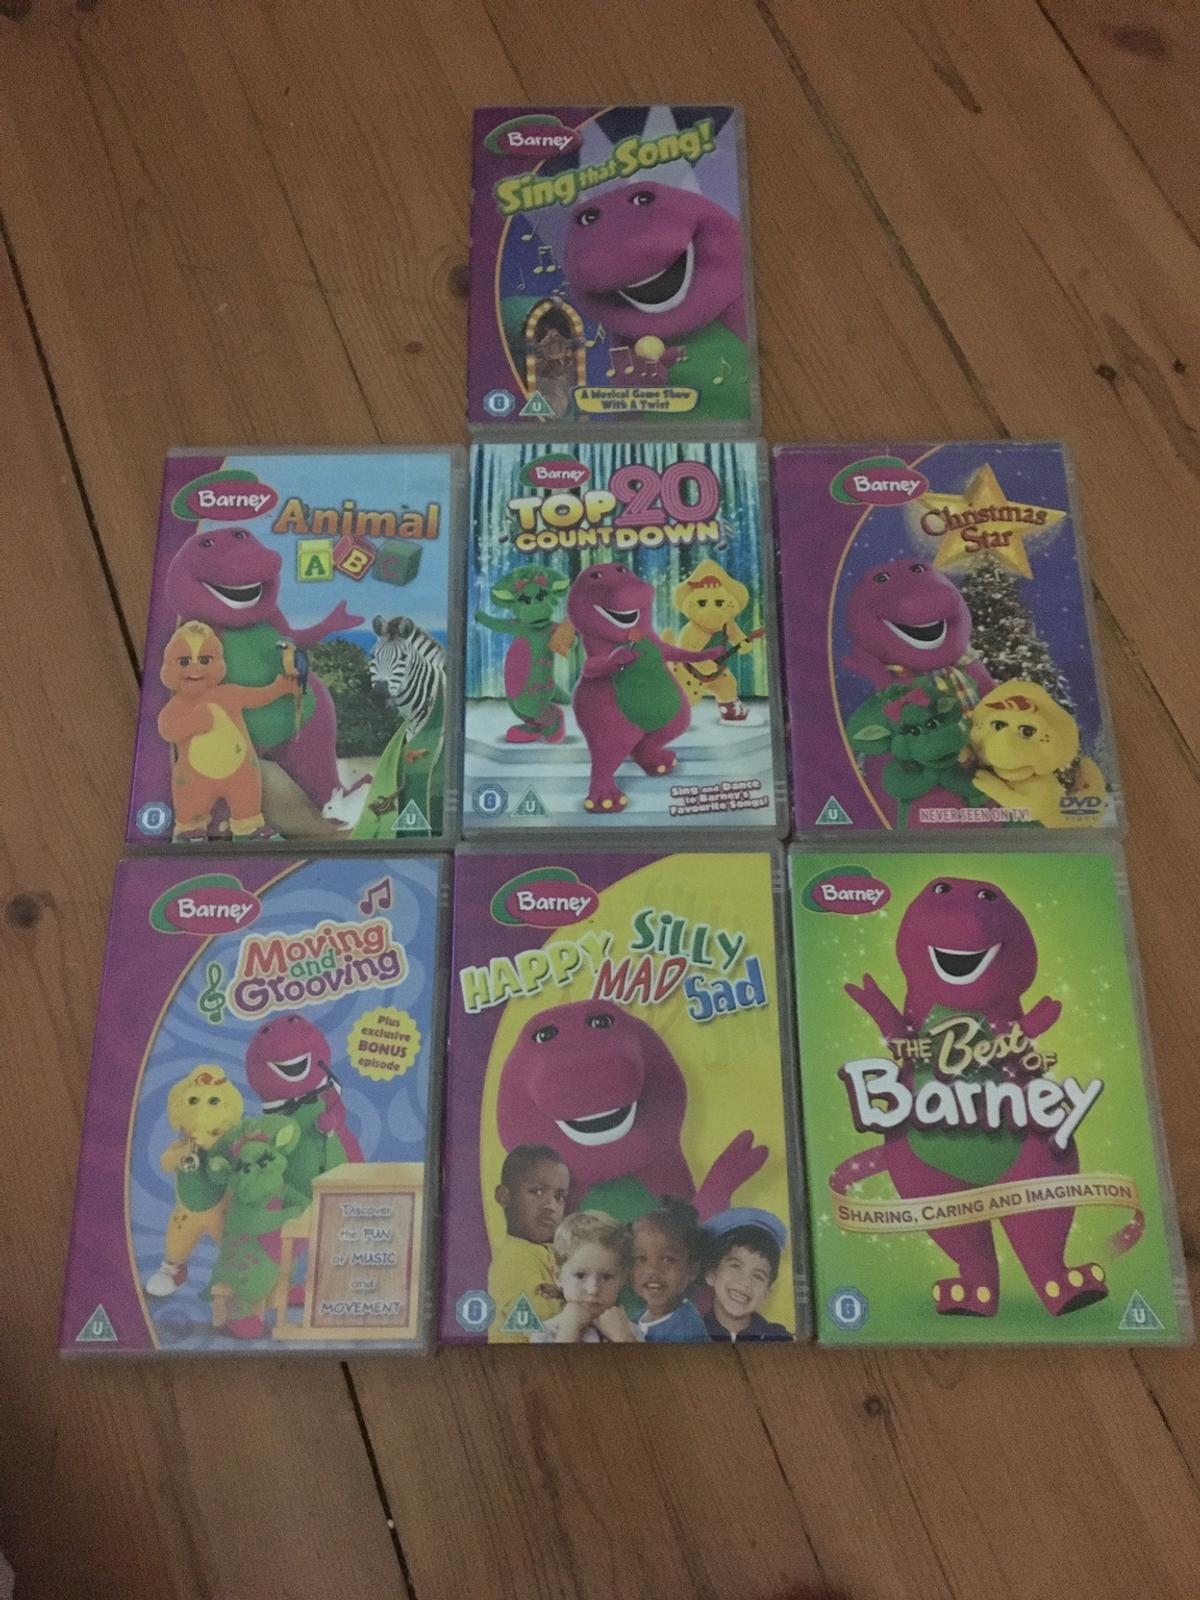 7 Pre owned selection of Barneys cd. Includes Animal ABC and moving and grooving. Please see photos.